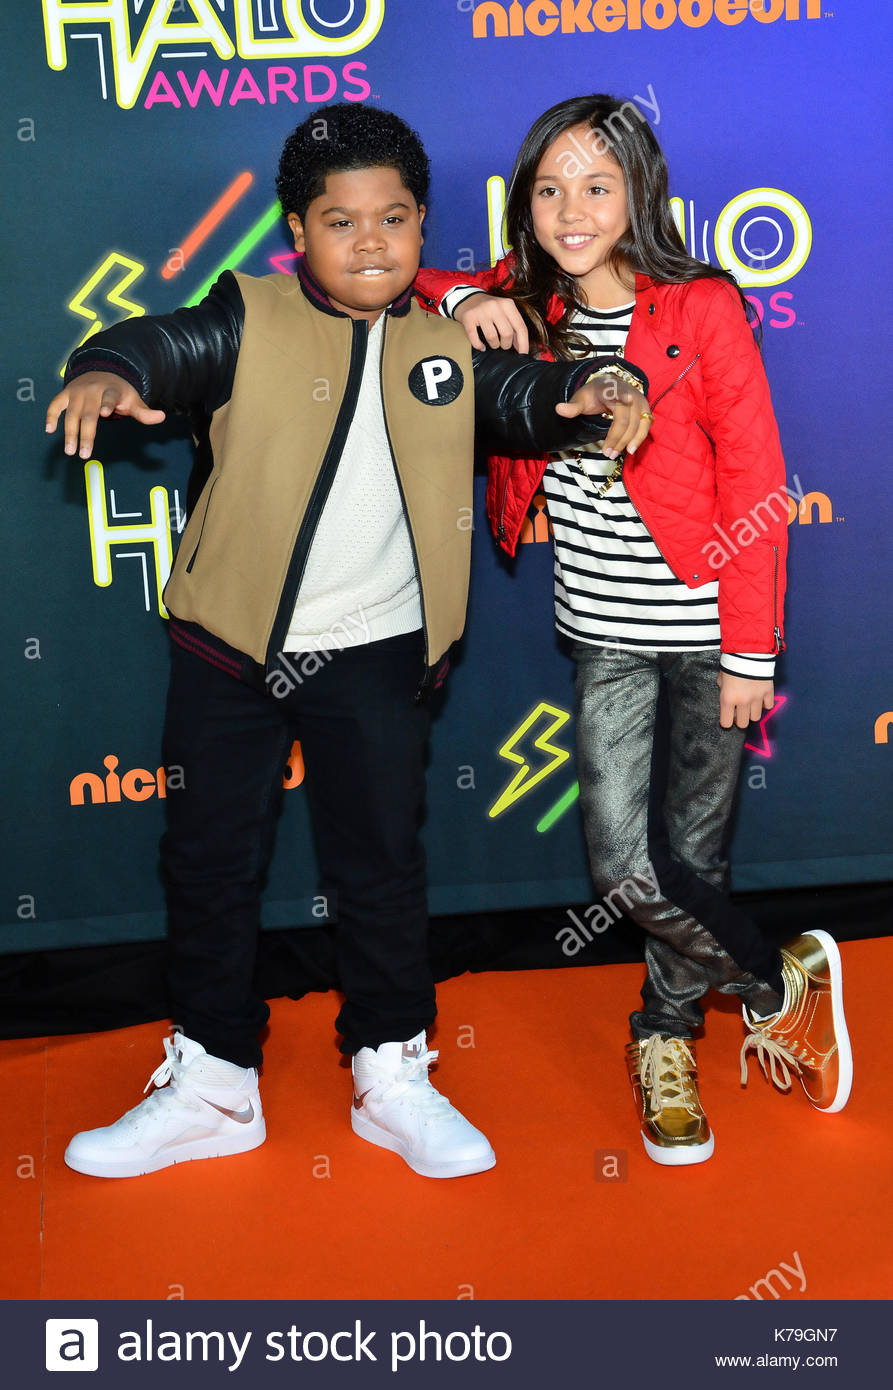 Breanna yde and benjamin flores jr stock photos breanna yde and benjamin flores jr and breanna yde 2014 nickelodeon halo awards at pier 36 on november thecheapjerseys